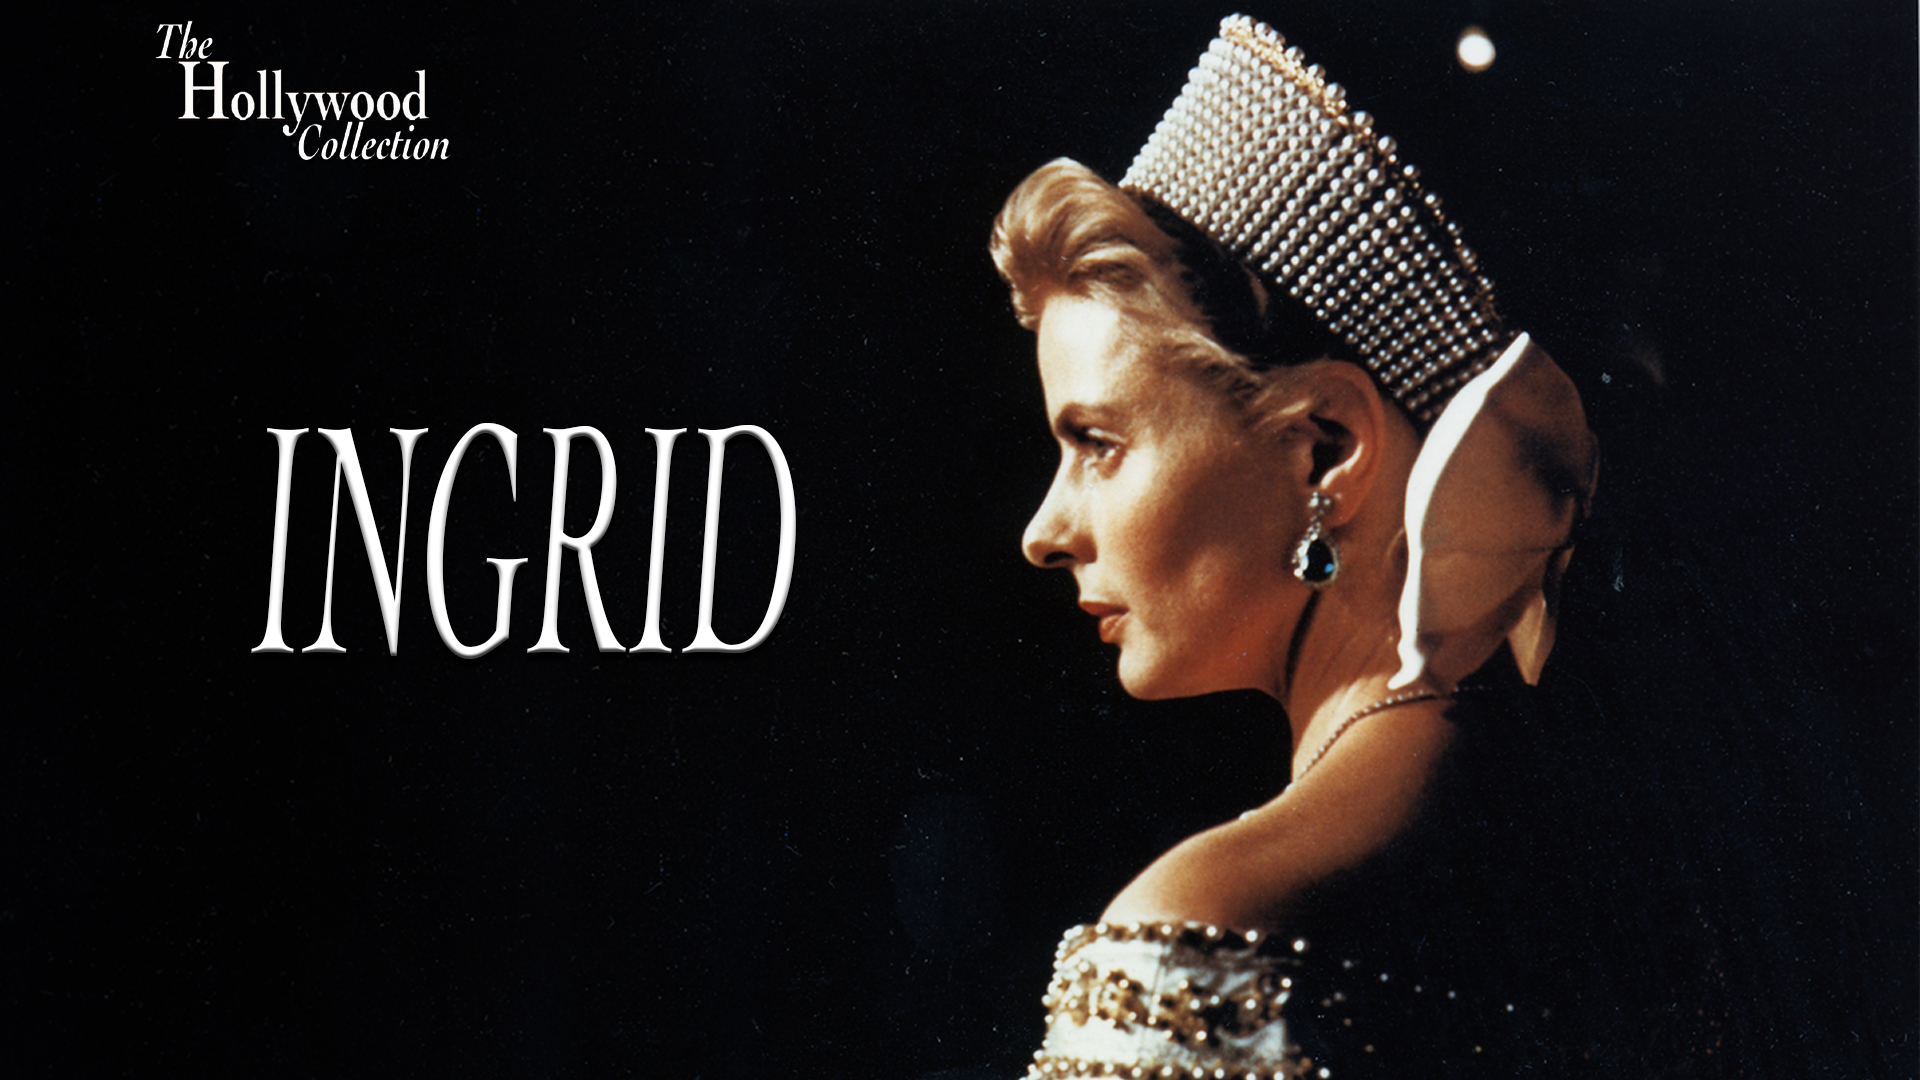 The Hollywood Collection: Ingrid